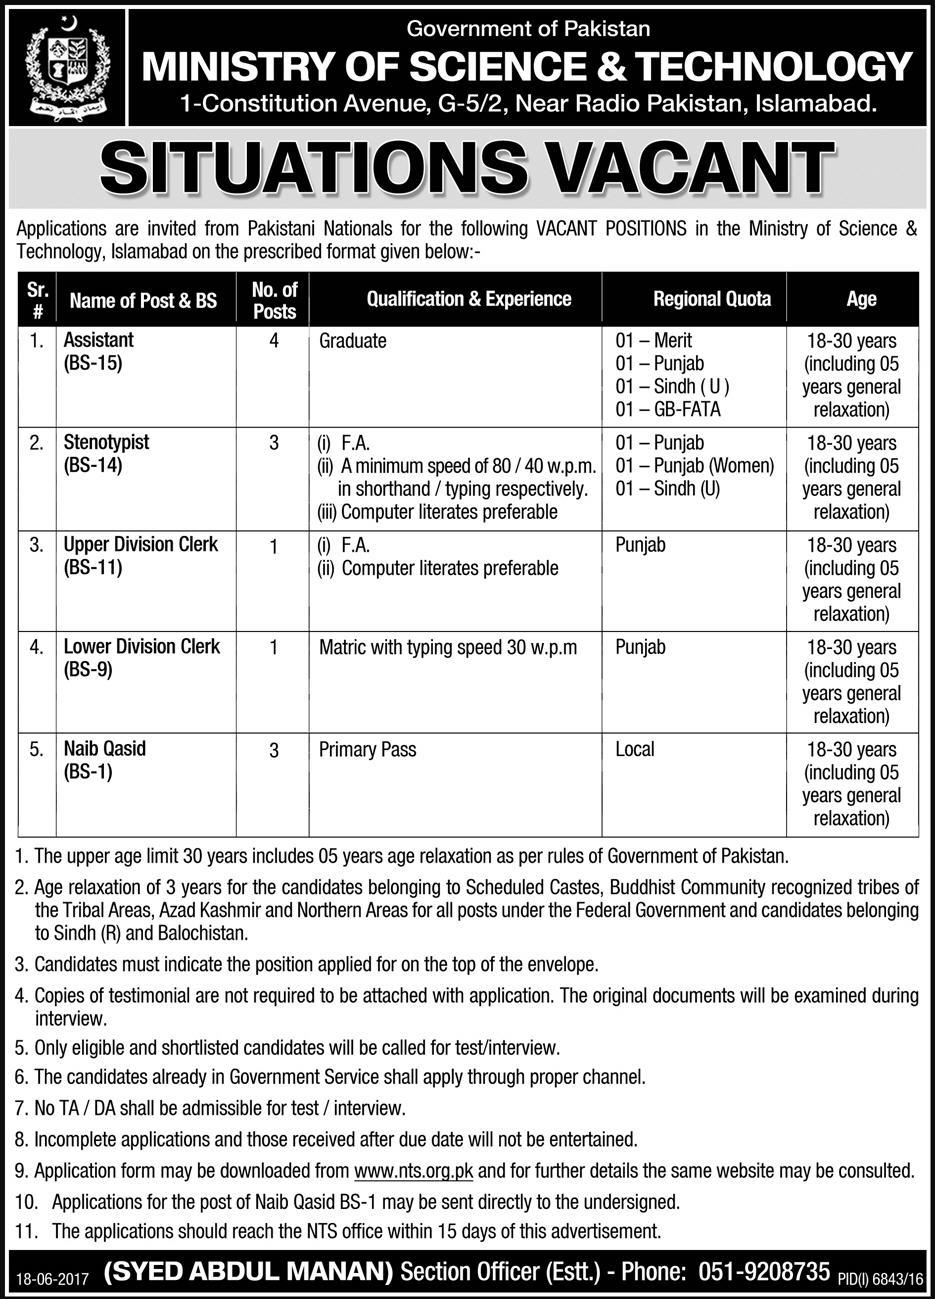 Jobs in Ministry of Science & Technology Islamabad 2017 Latest is published in Express newspaper on 18 June 2017